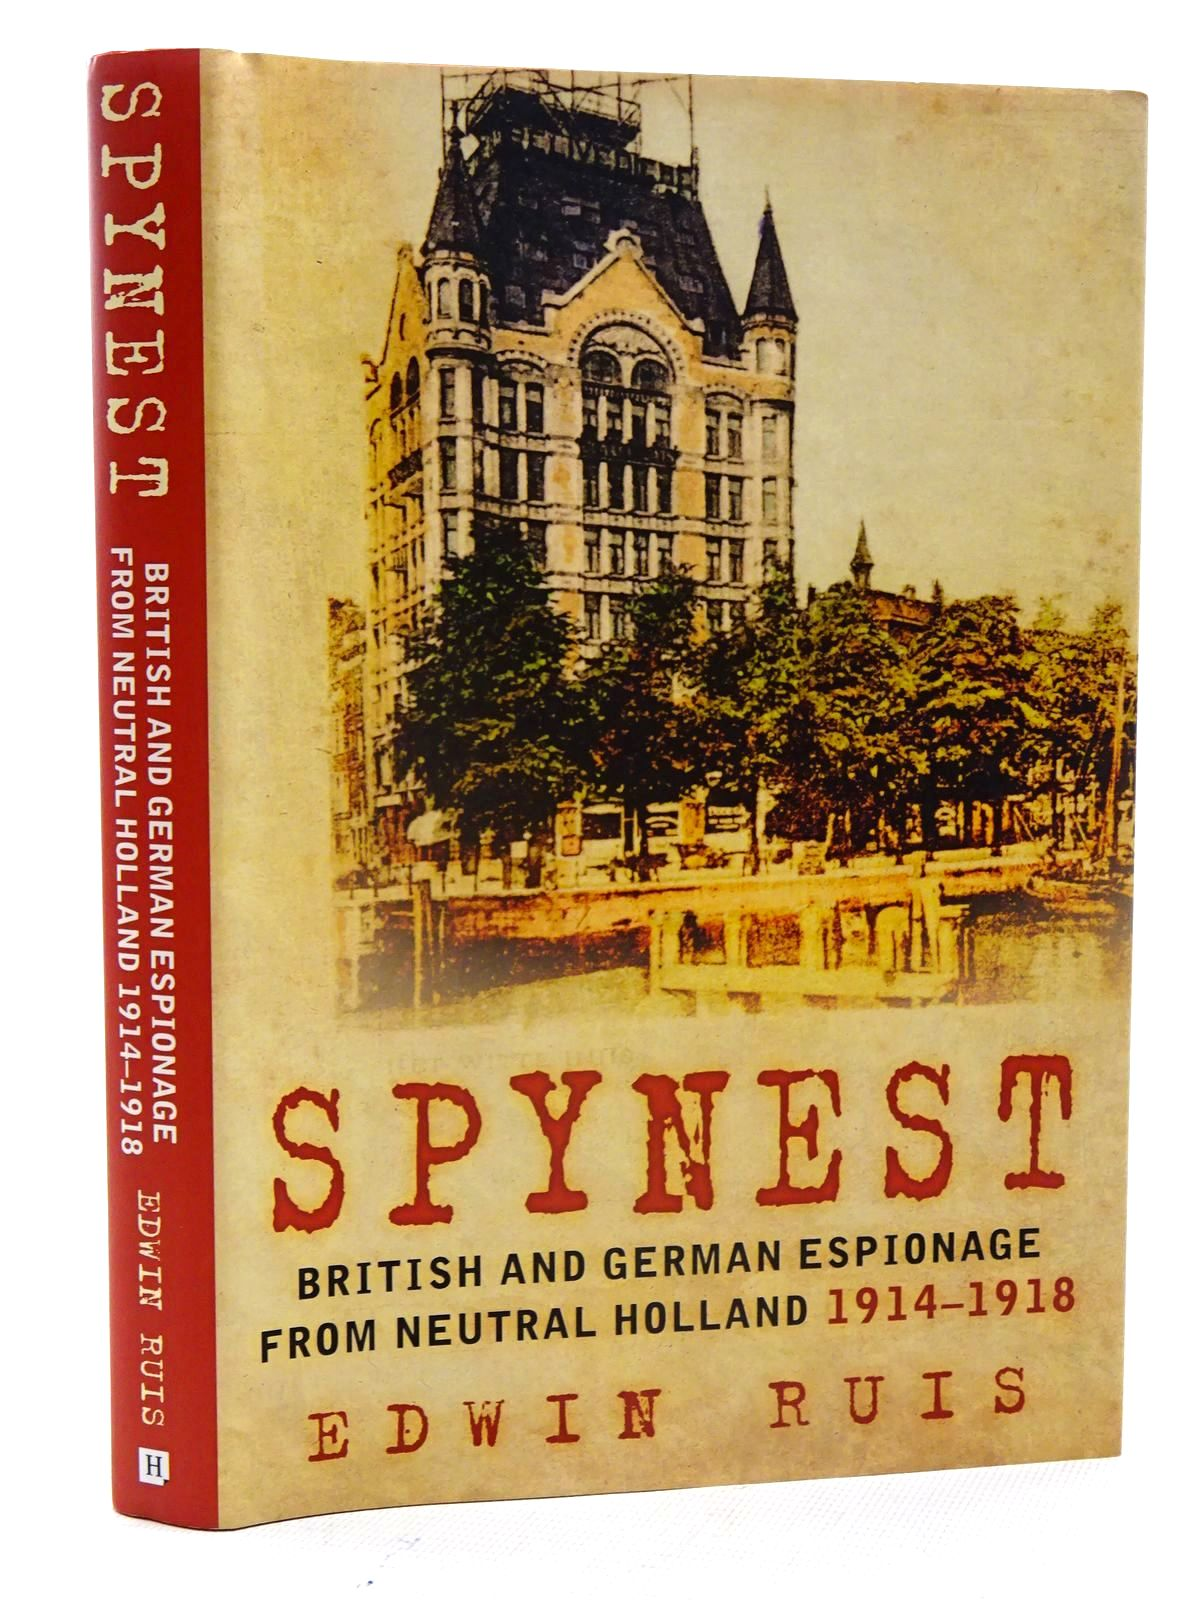 Photo of SPYNEST BRITISH AND GERMAN ESPIONAGE FROM NEUTRAL HOLLAND 1914-1918 written by Ruis, Edwin published by The History Press (STOCK CODE: 2125801)  for sale by Stella & Rose's Books